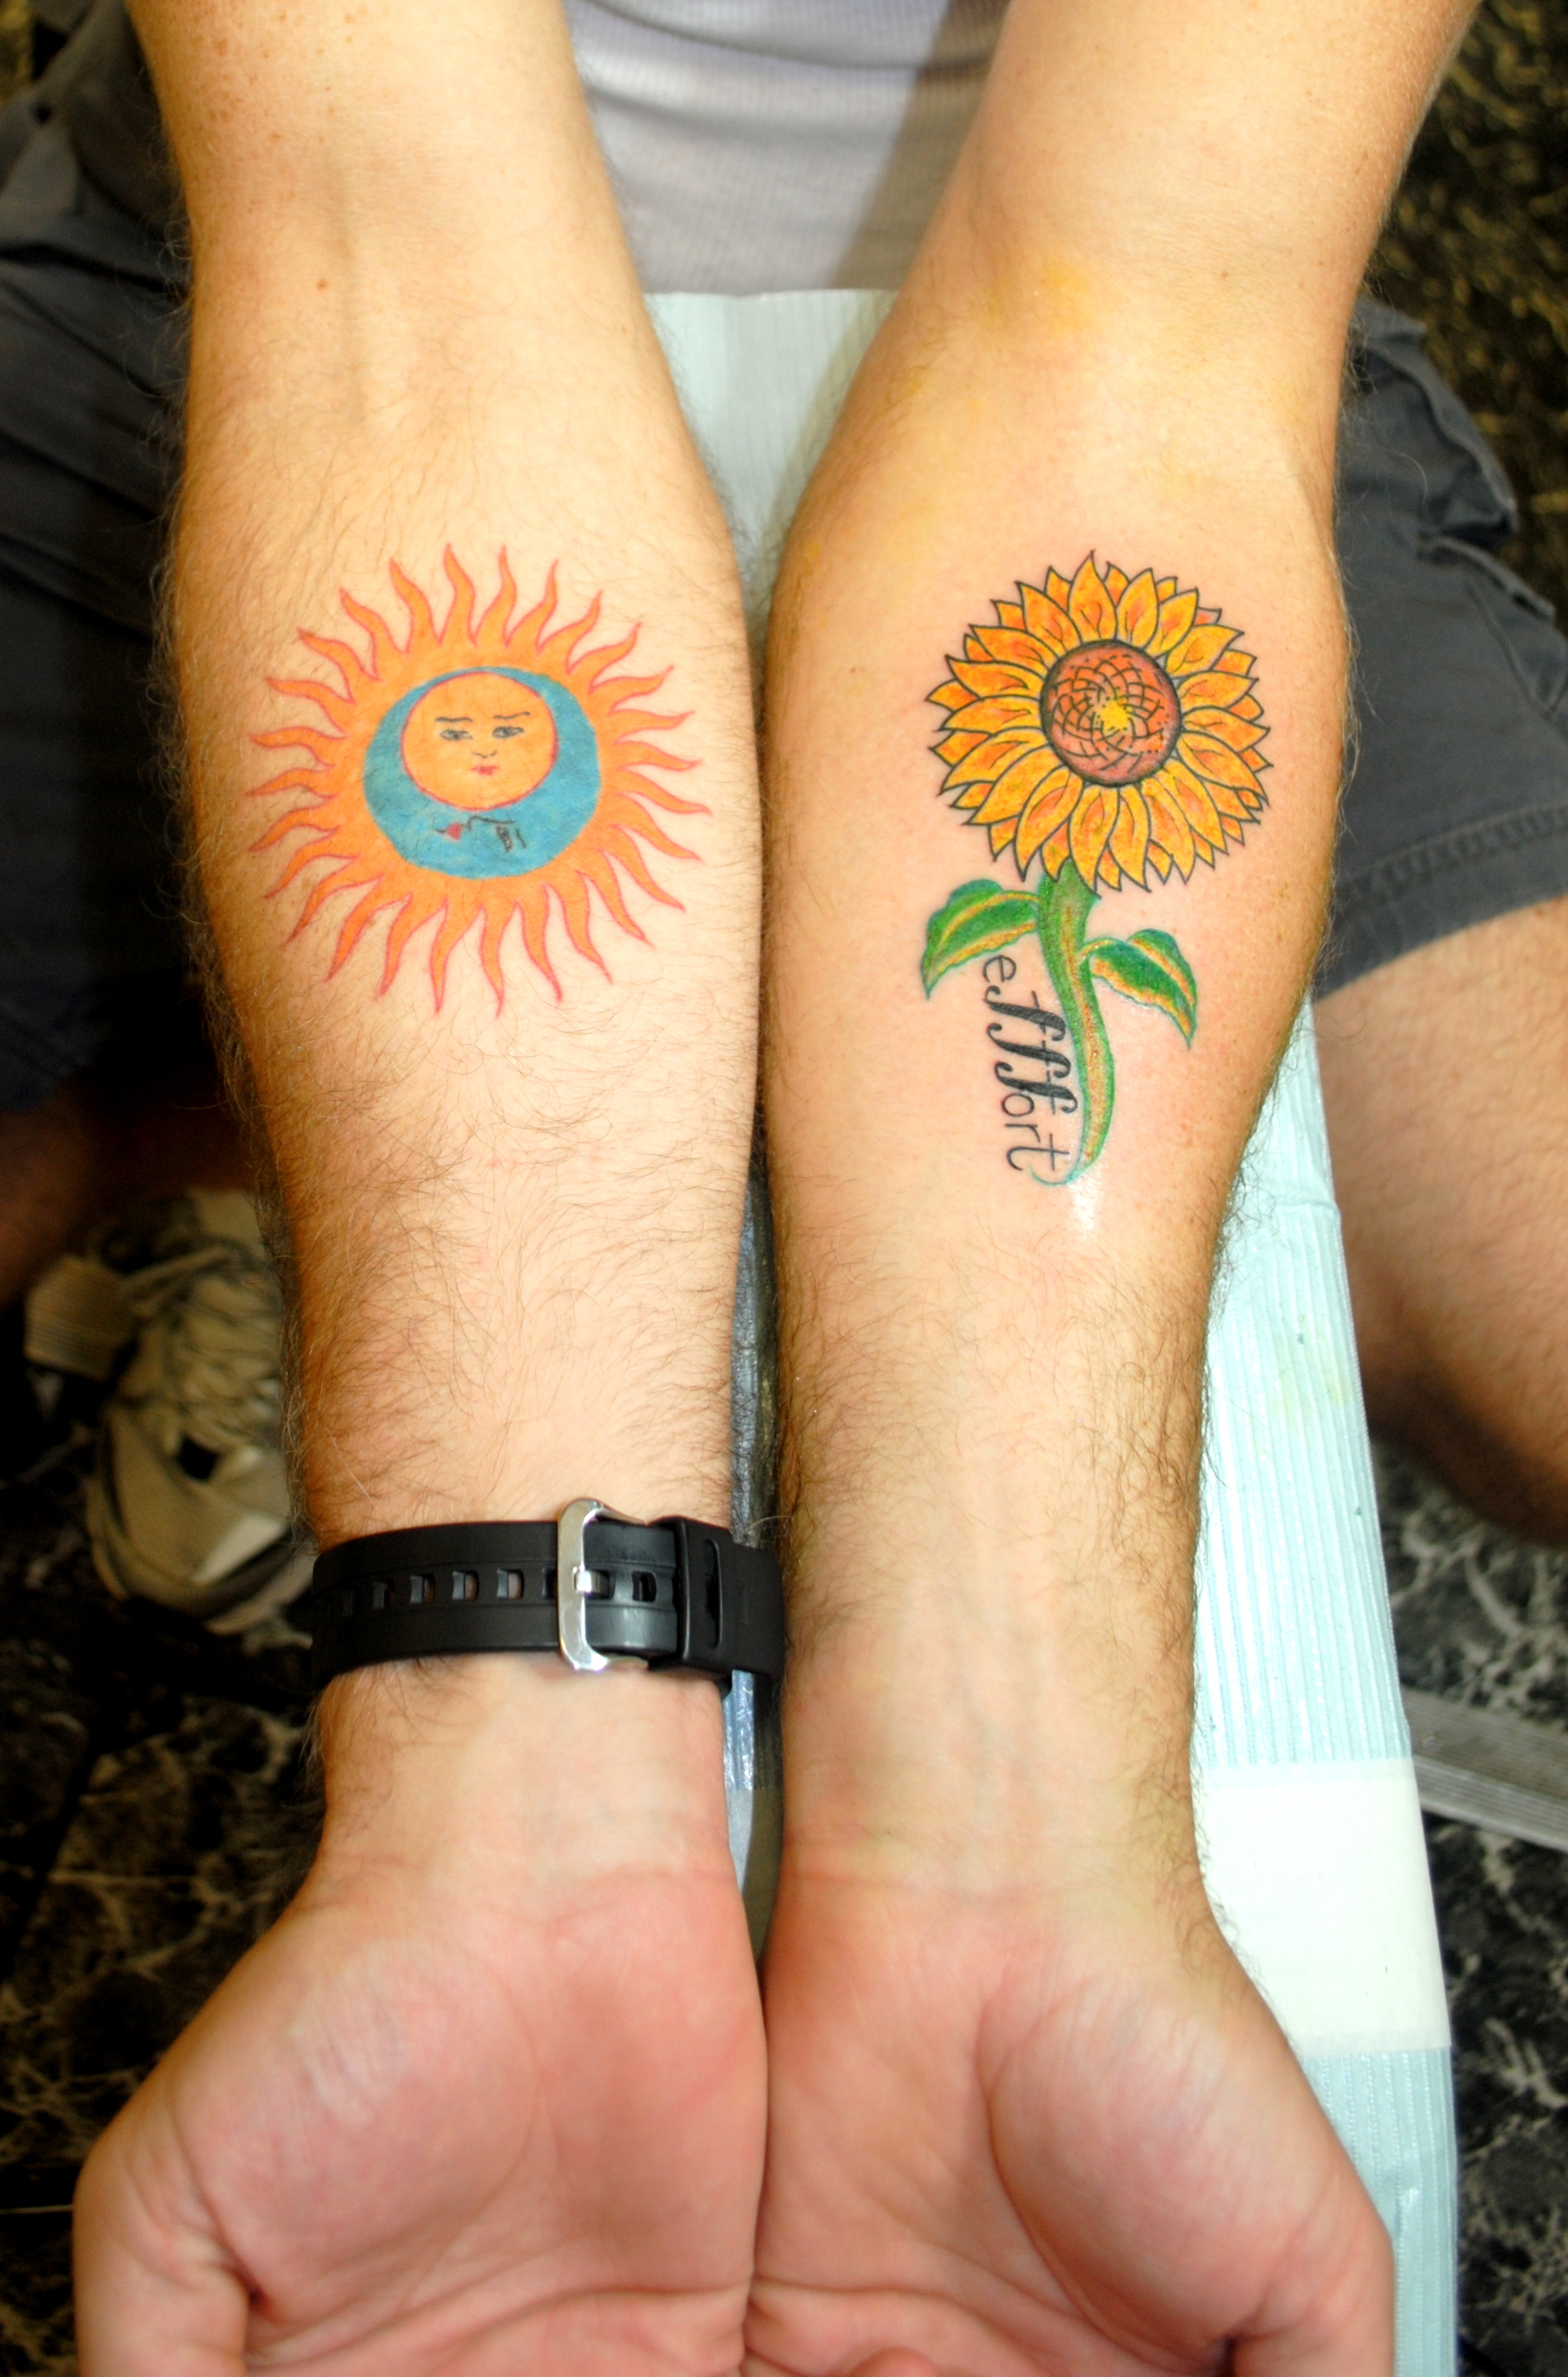 Sun & Moon Tattoo and Sunflower Tattoo b